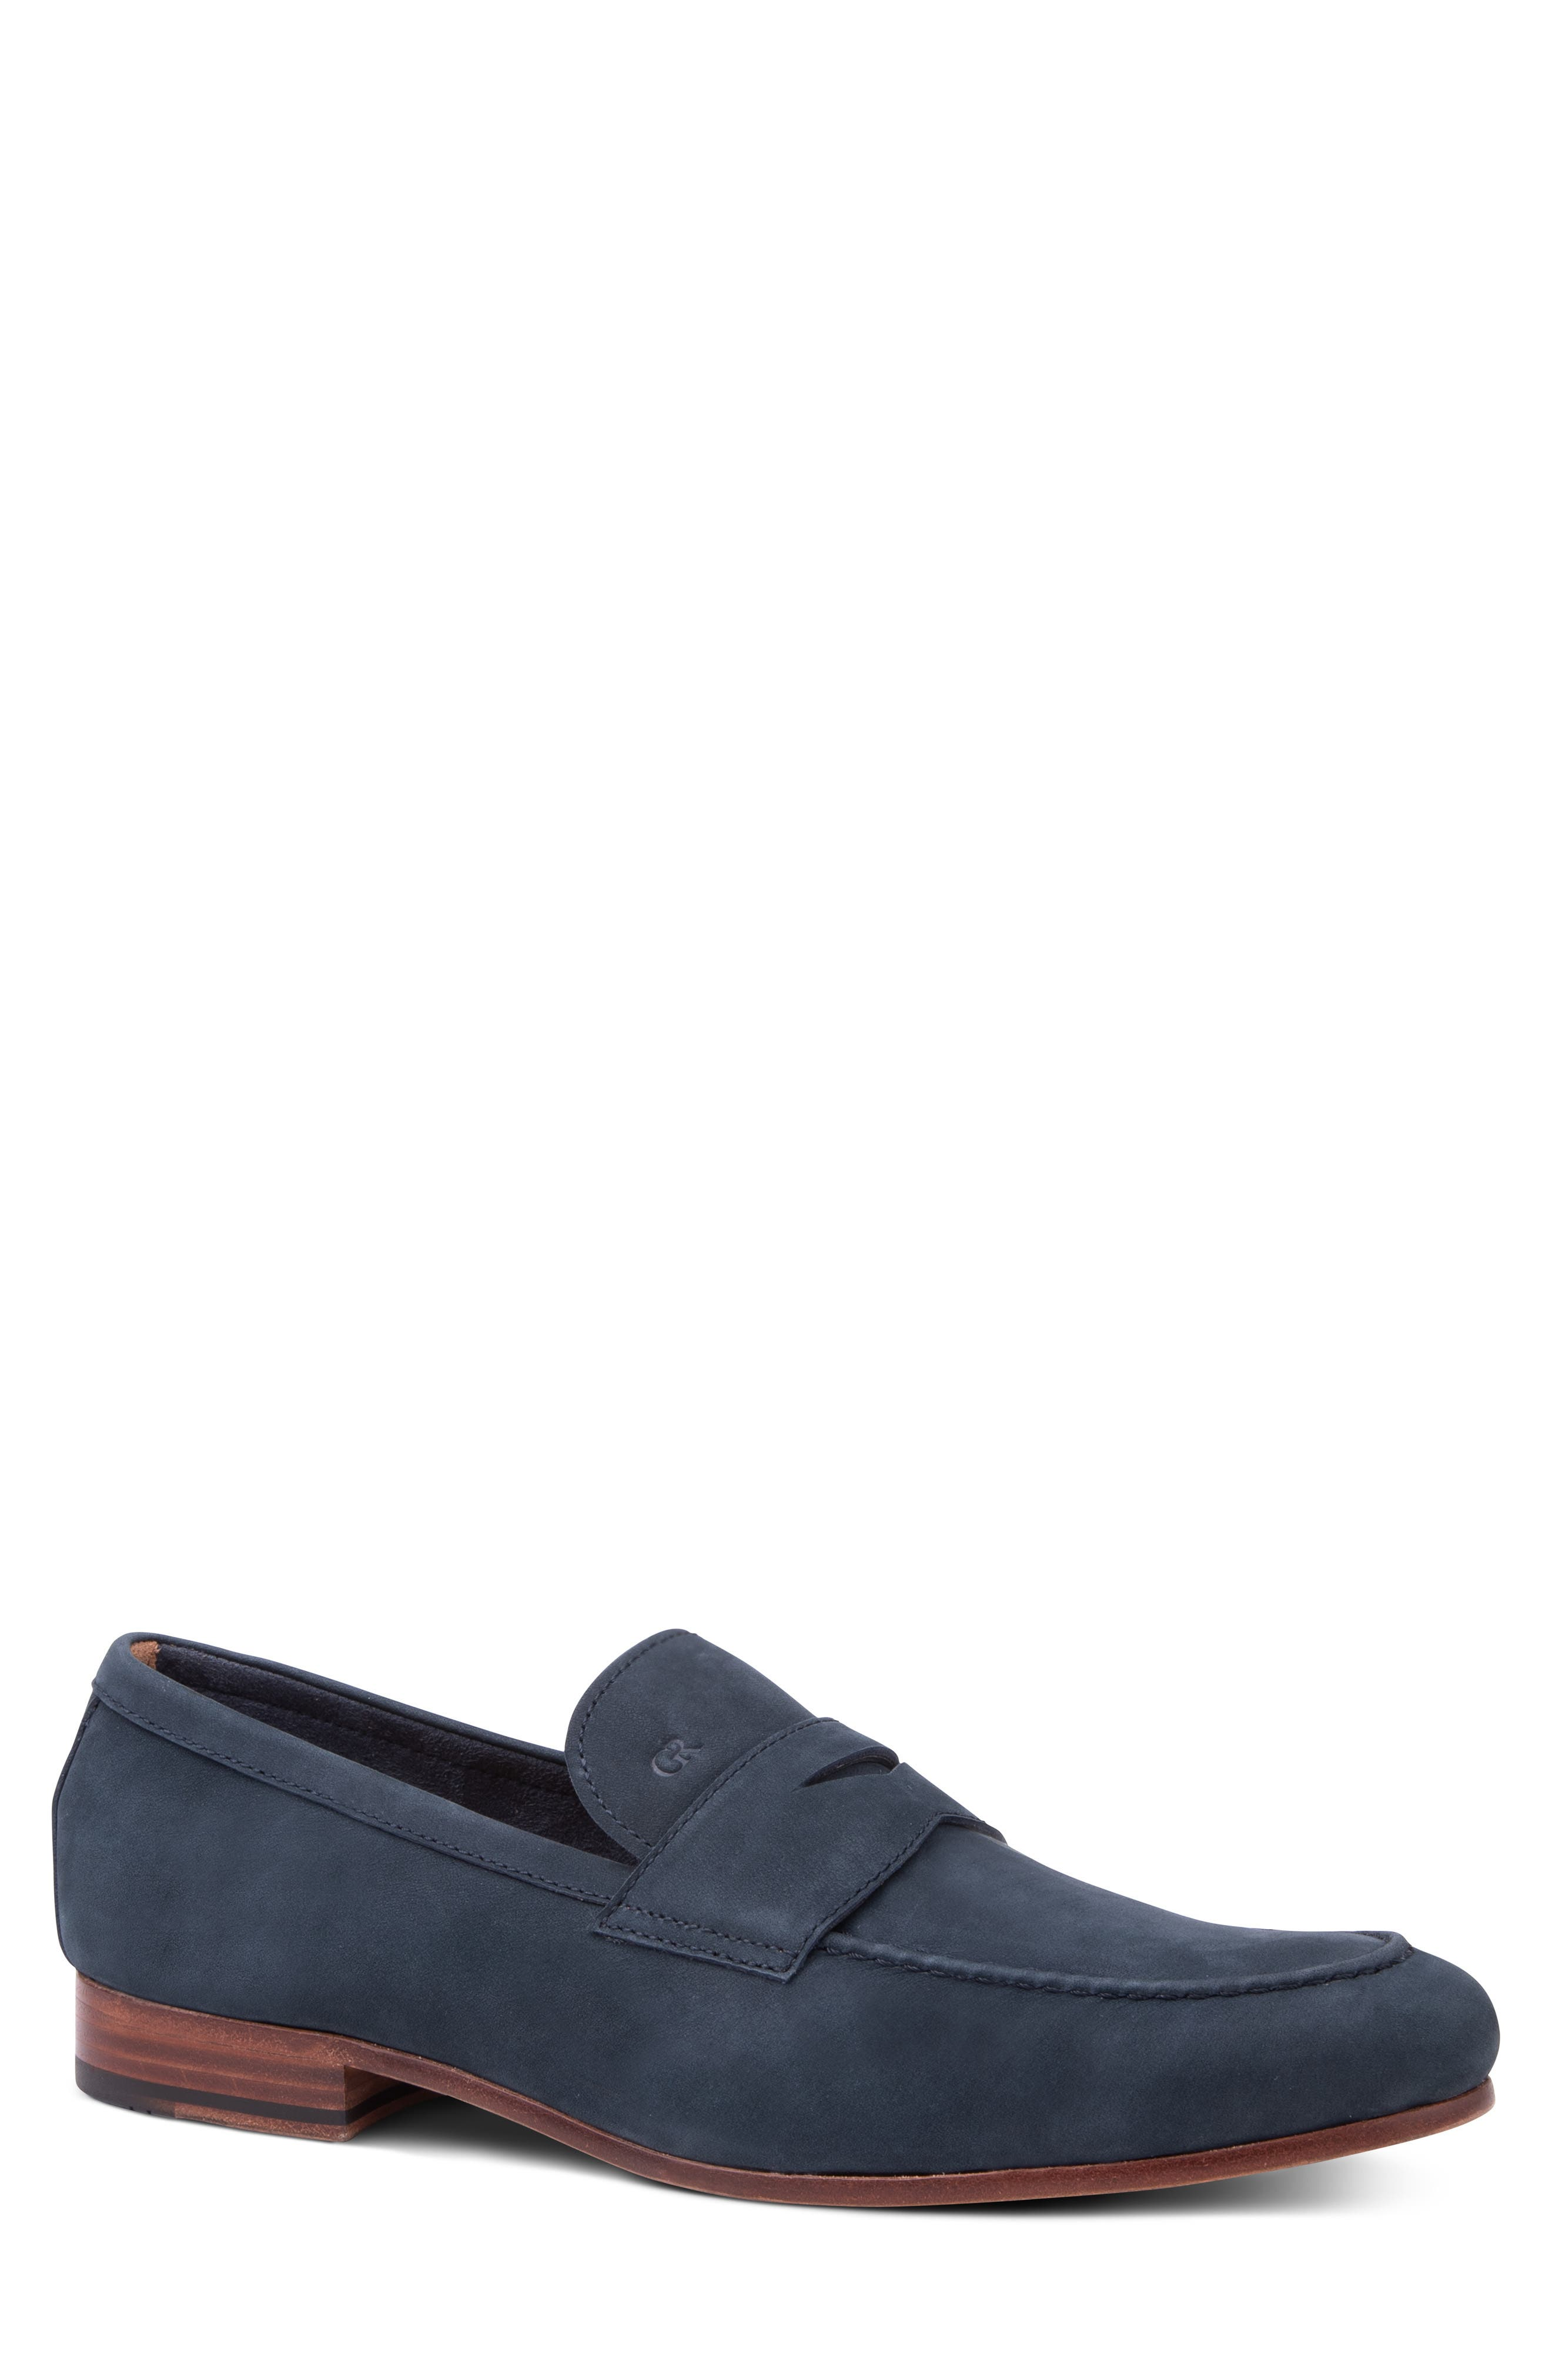 Cartwright Penny Loafer